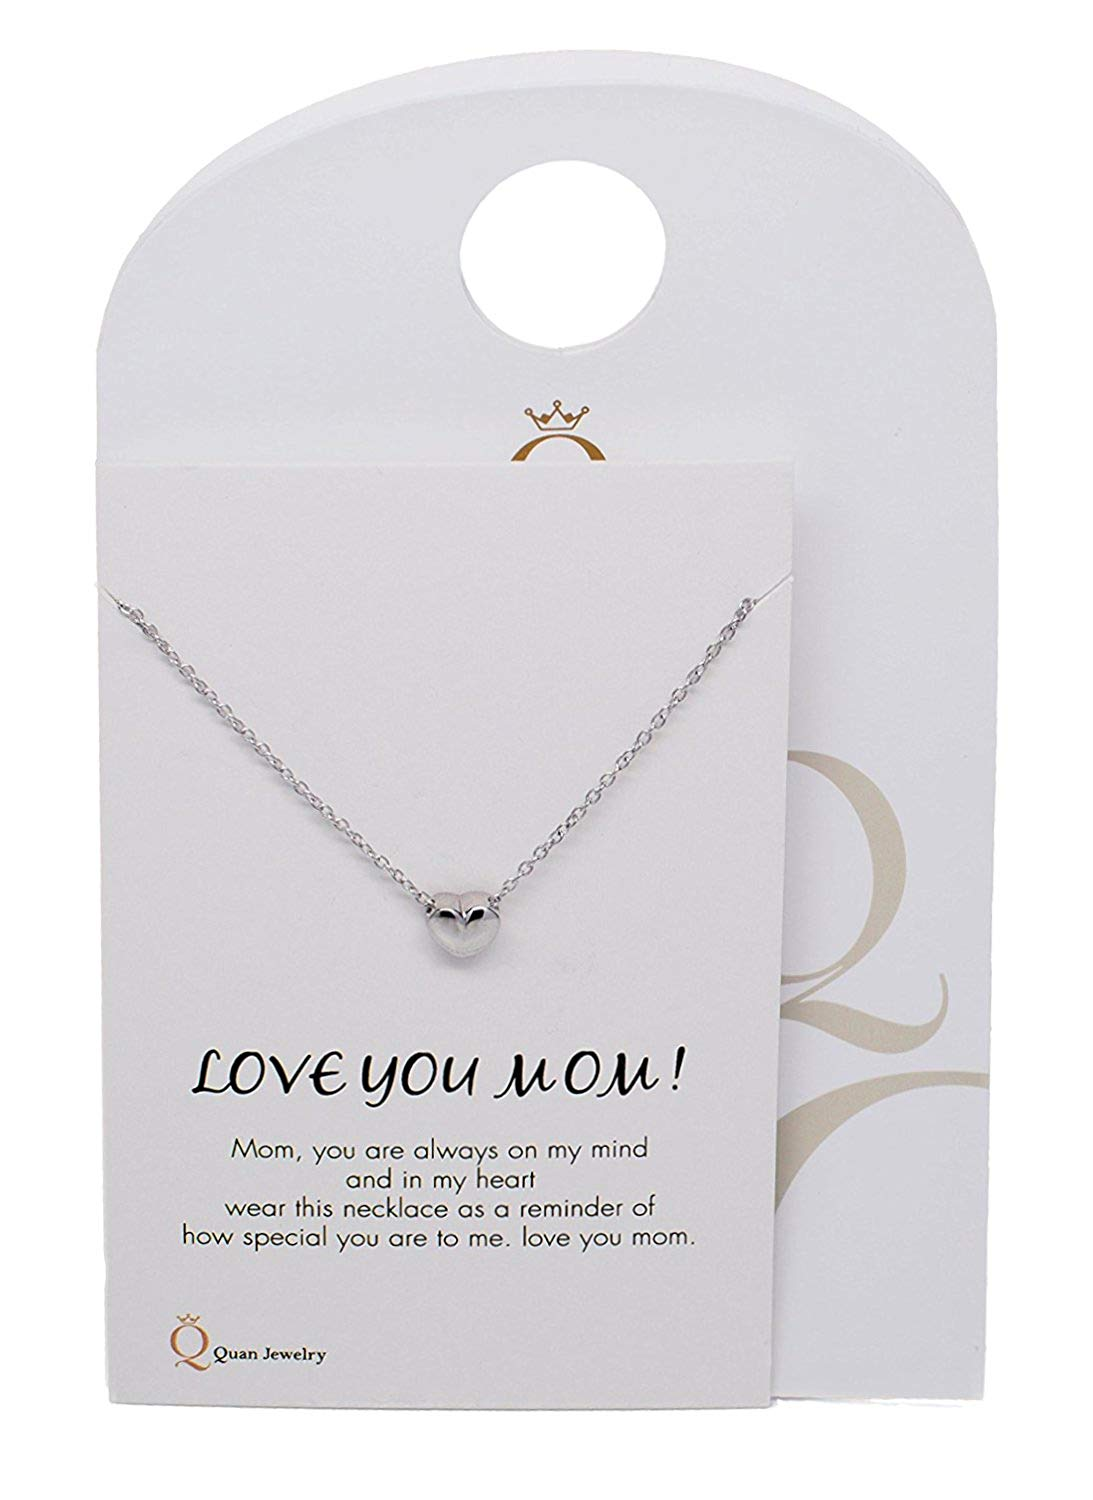 Jade Heart Pendant Necklace, Gift for Moms Birthday, Love you Mom Quote Card - Quan Jewelry